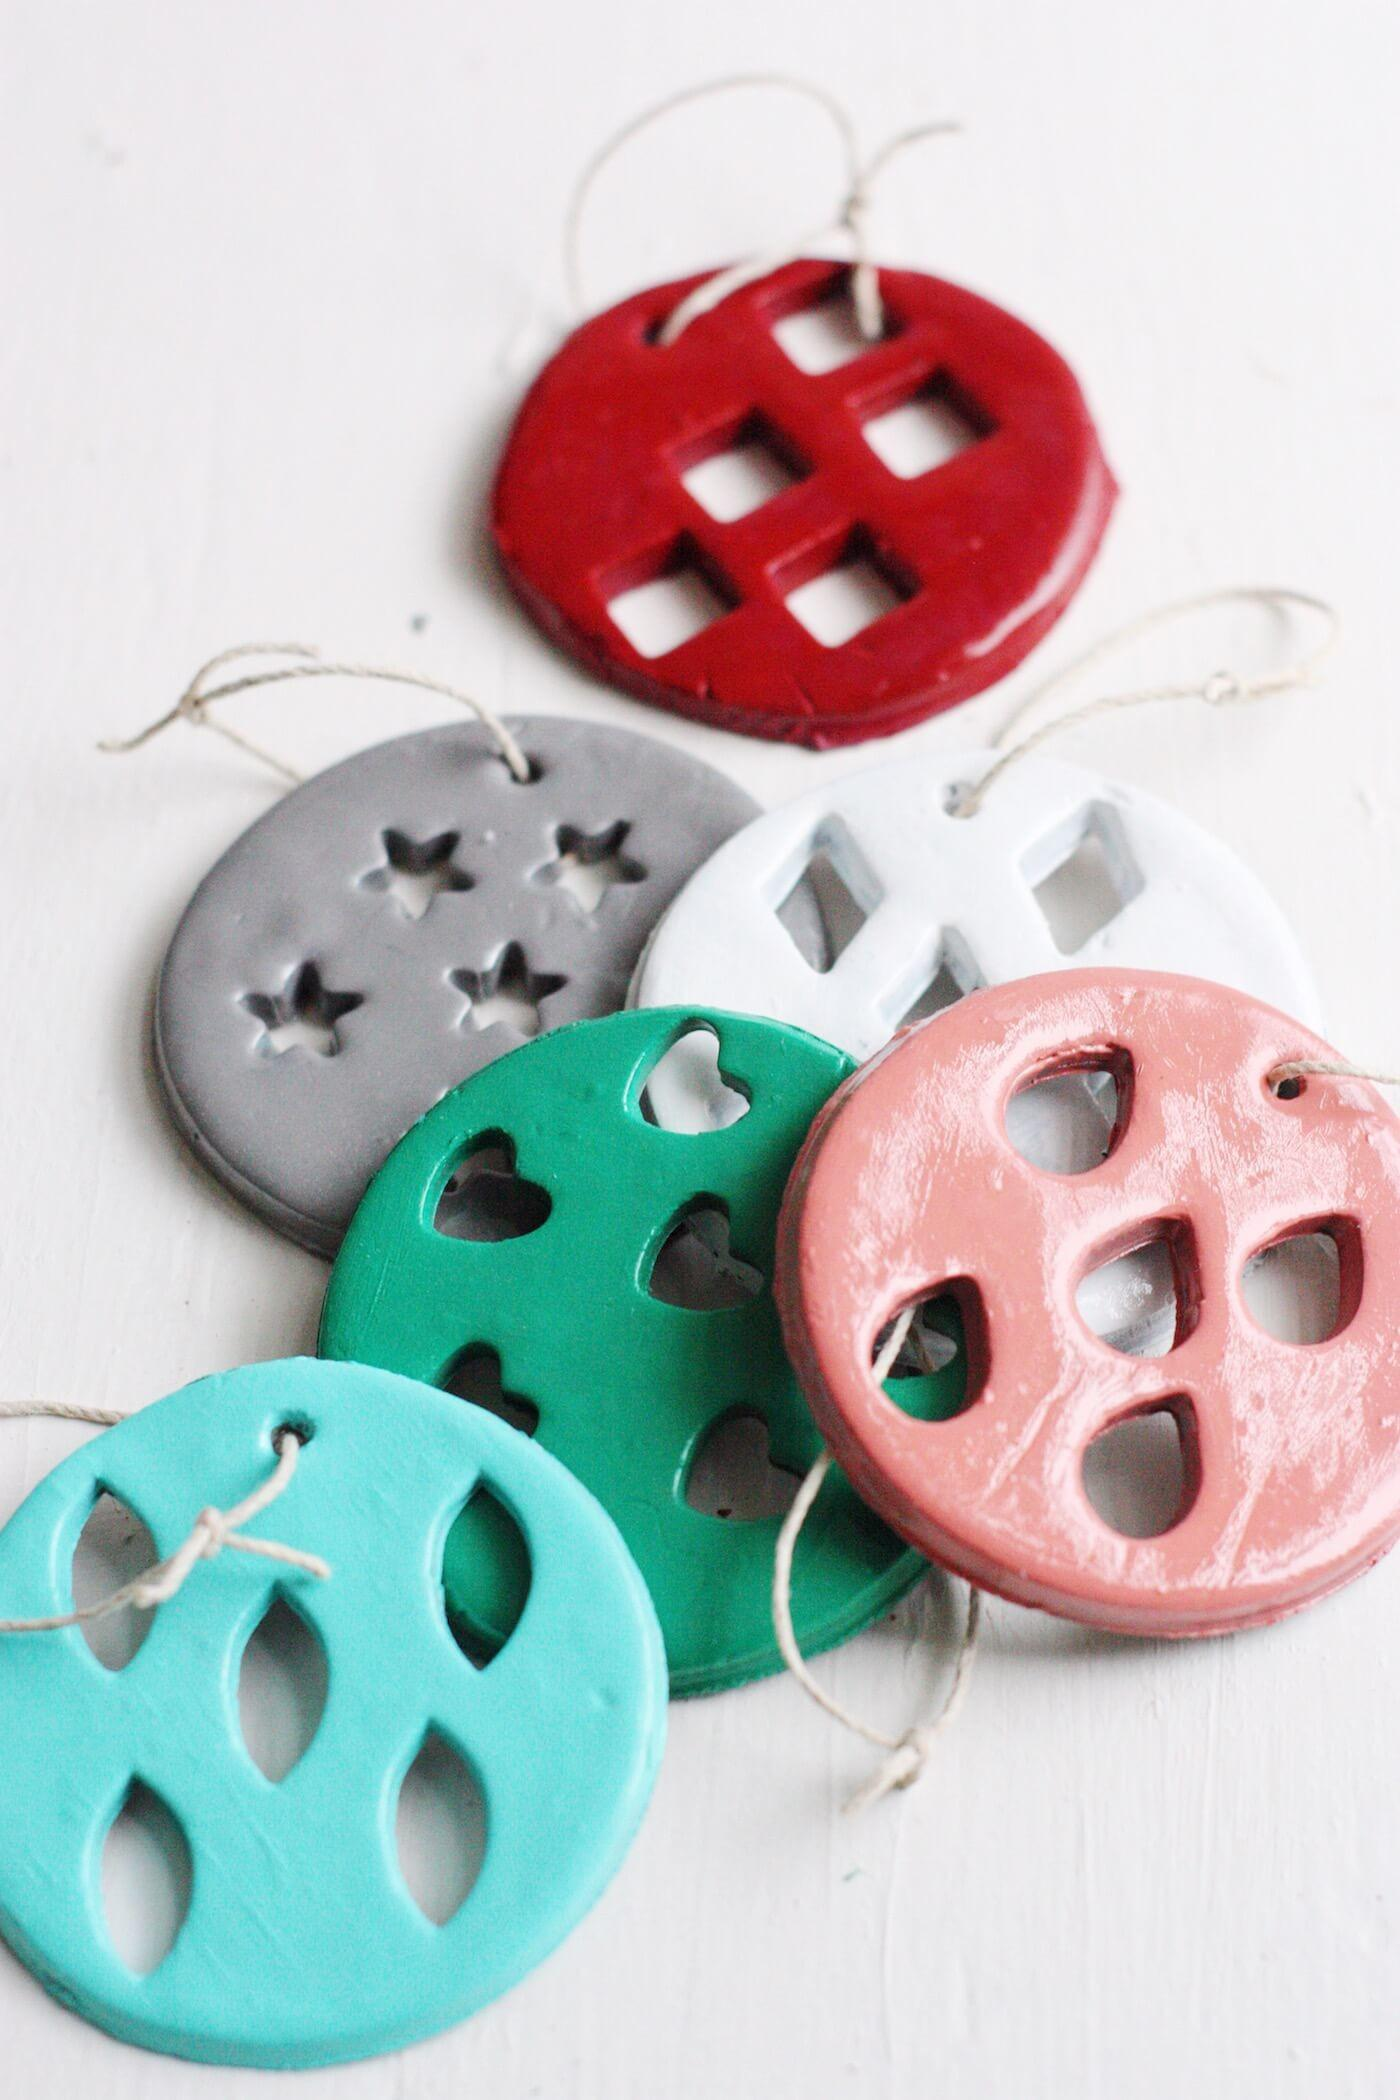 Stamped Geometric Clay Christmas Ornaments Diy Candy